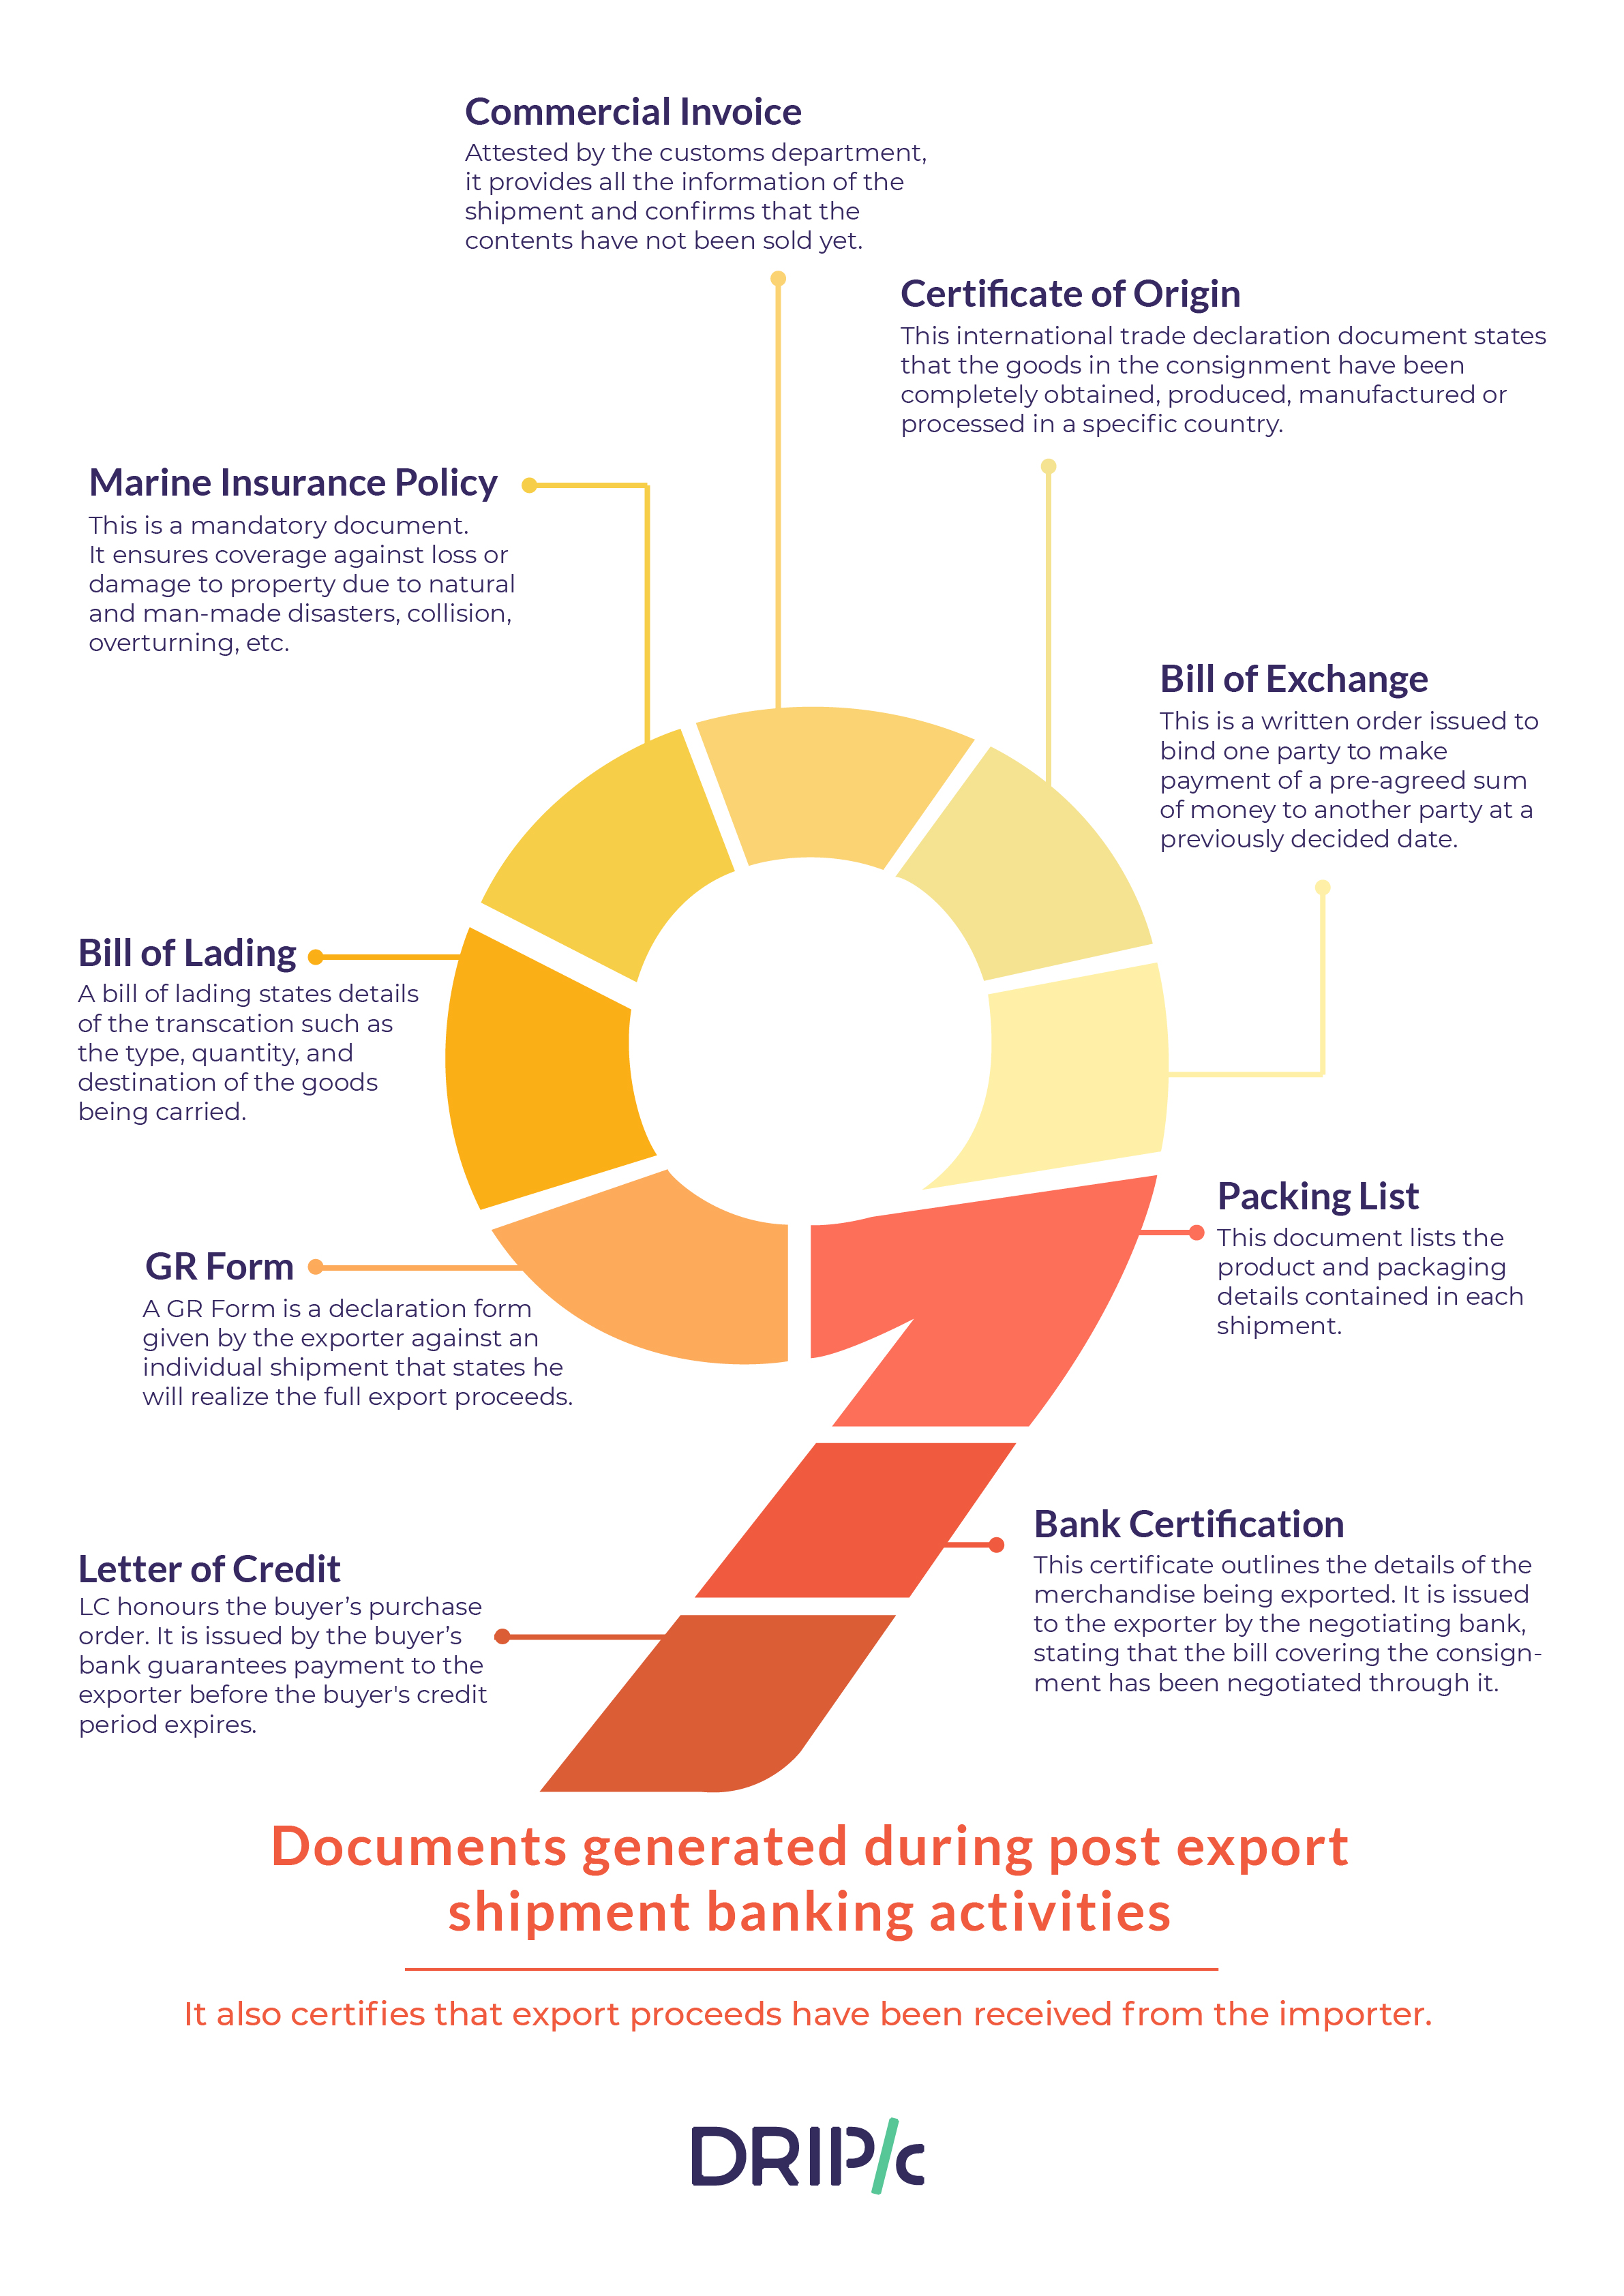 Documents Generated in Post Export Shipment Banking Activities